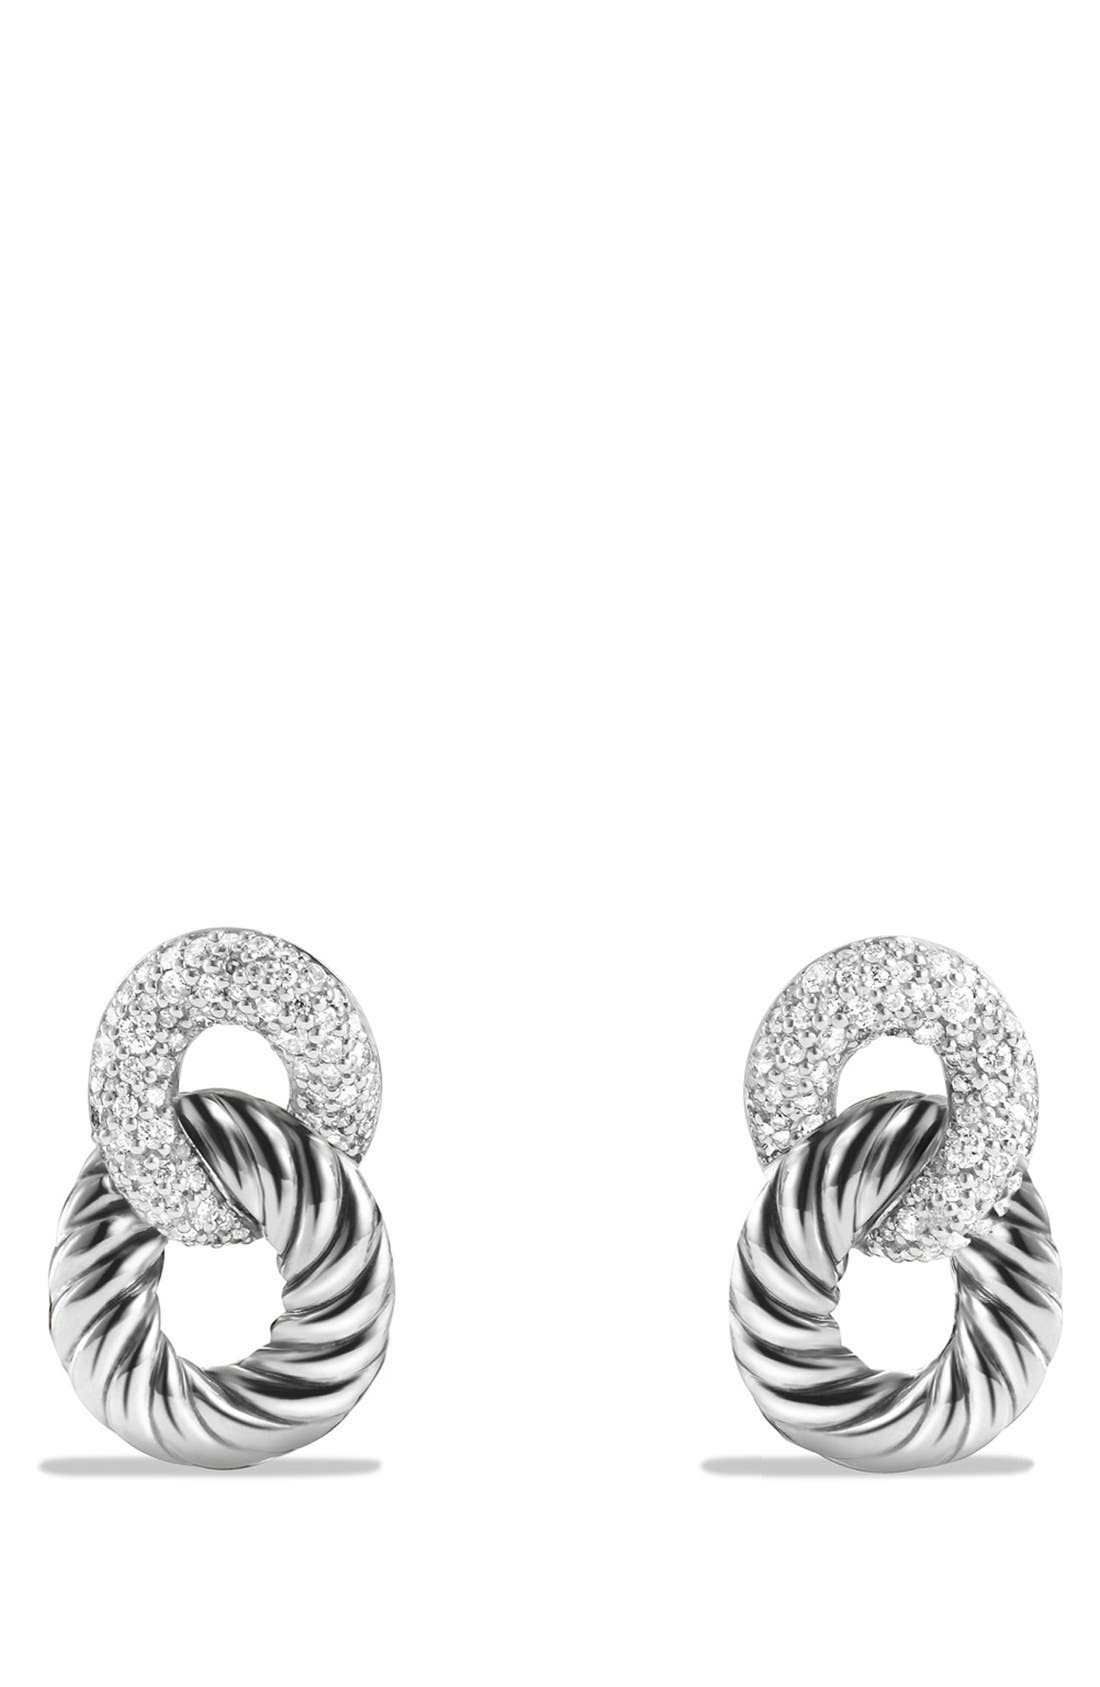 DAVID YURMAN 'Belmont Curb Link' Drop Earrings with